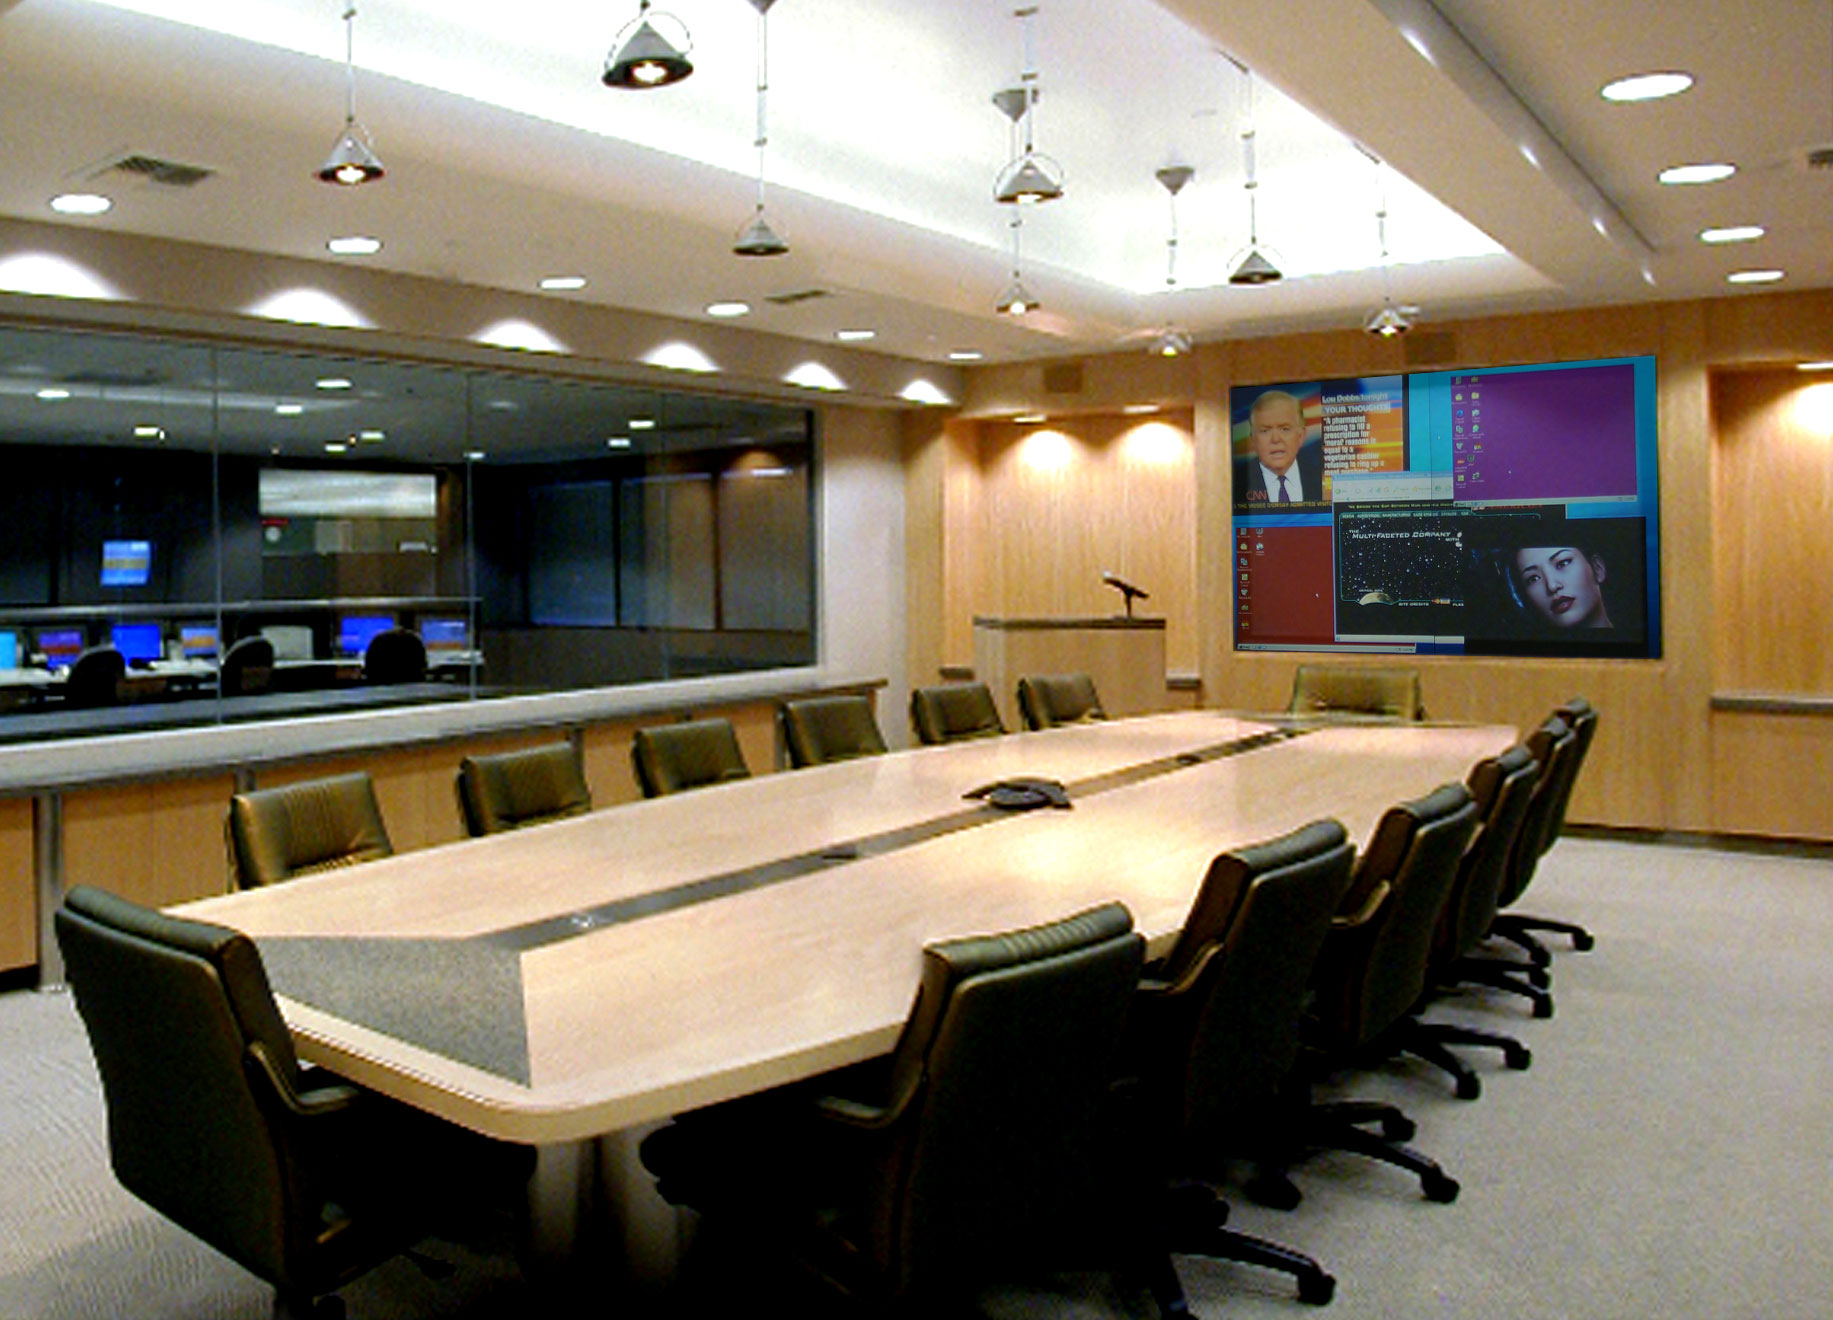 Multi-purpose Conference Room with Visionmaster DLP Video Wall